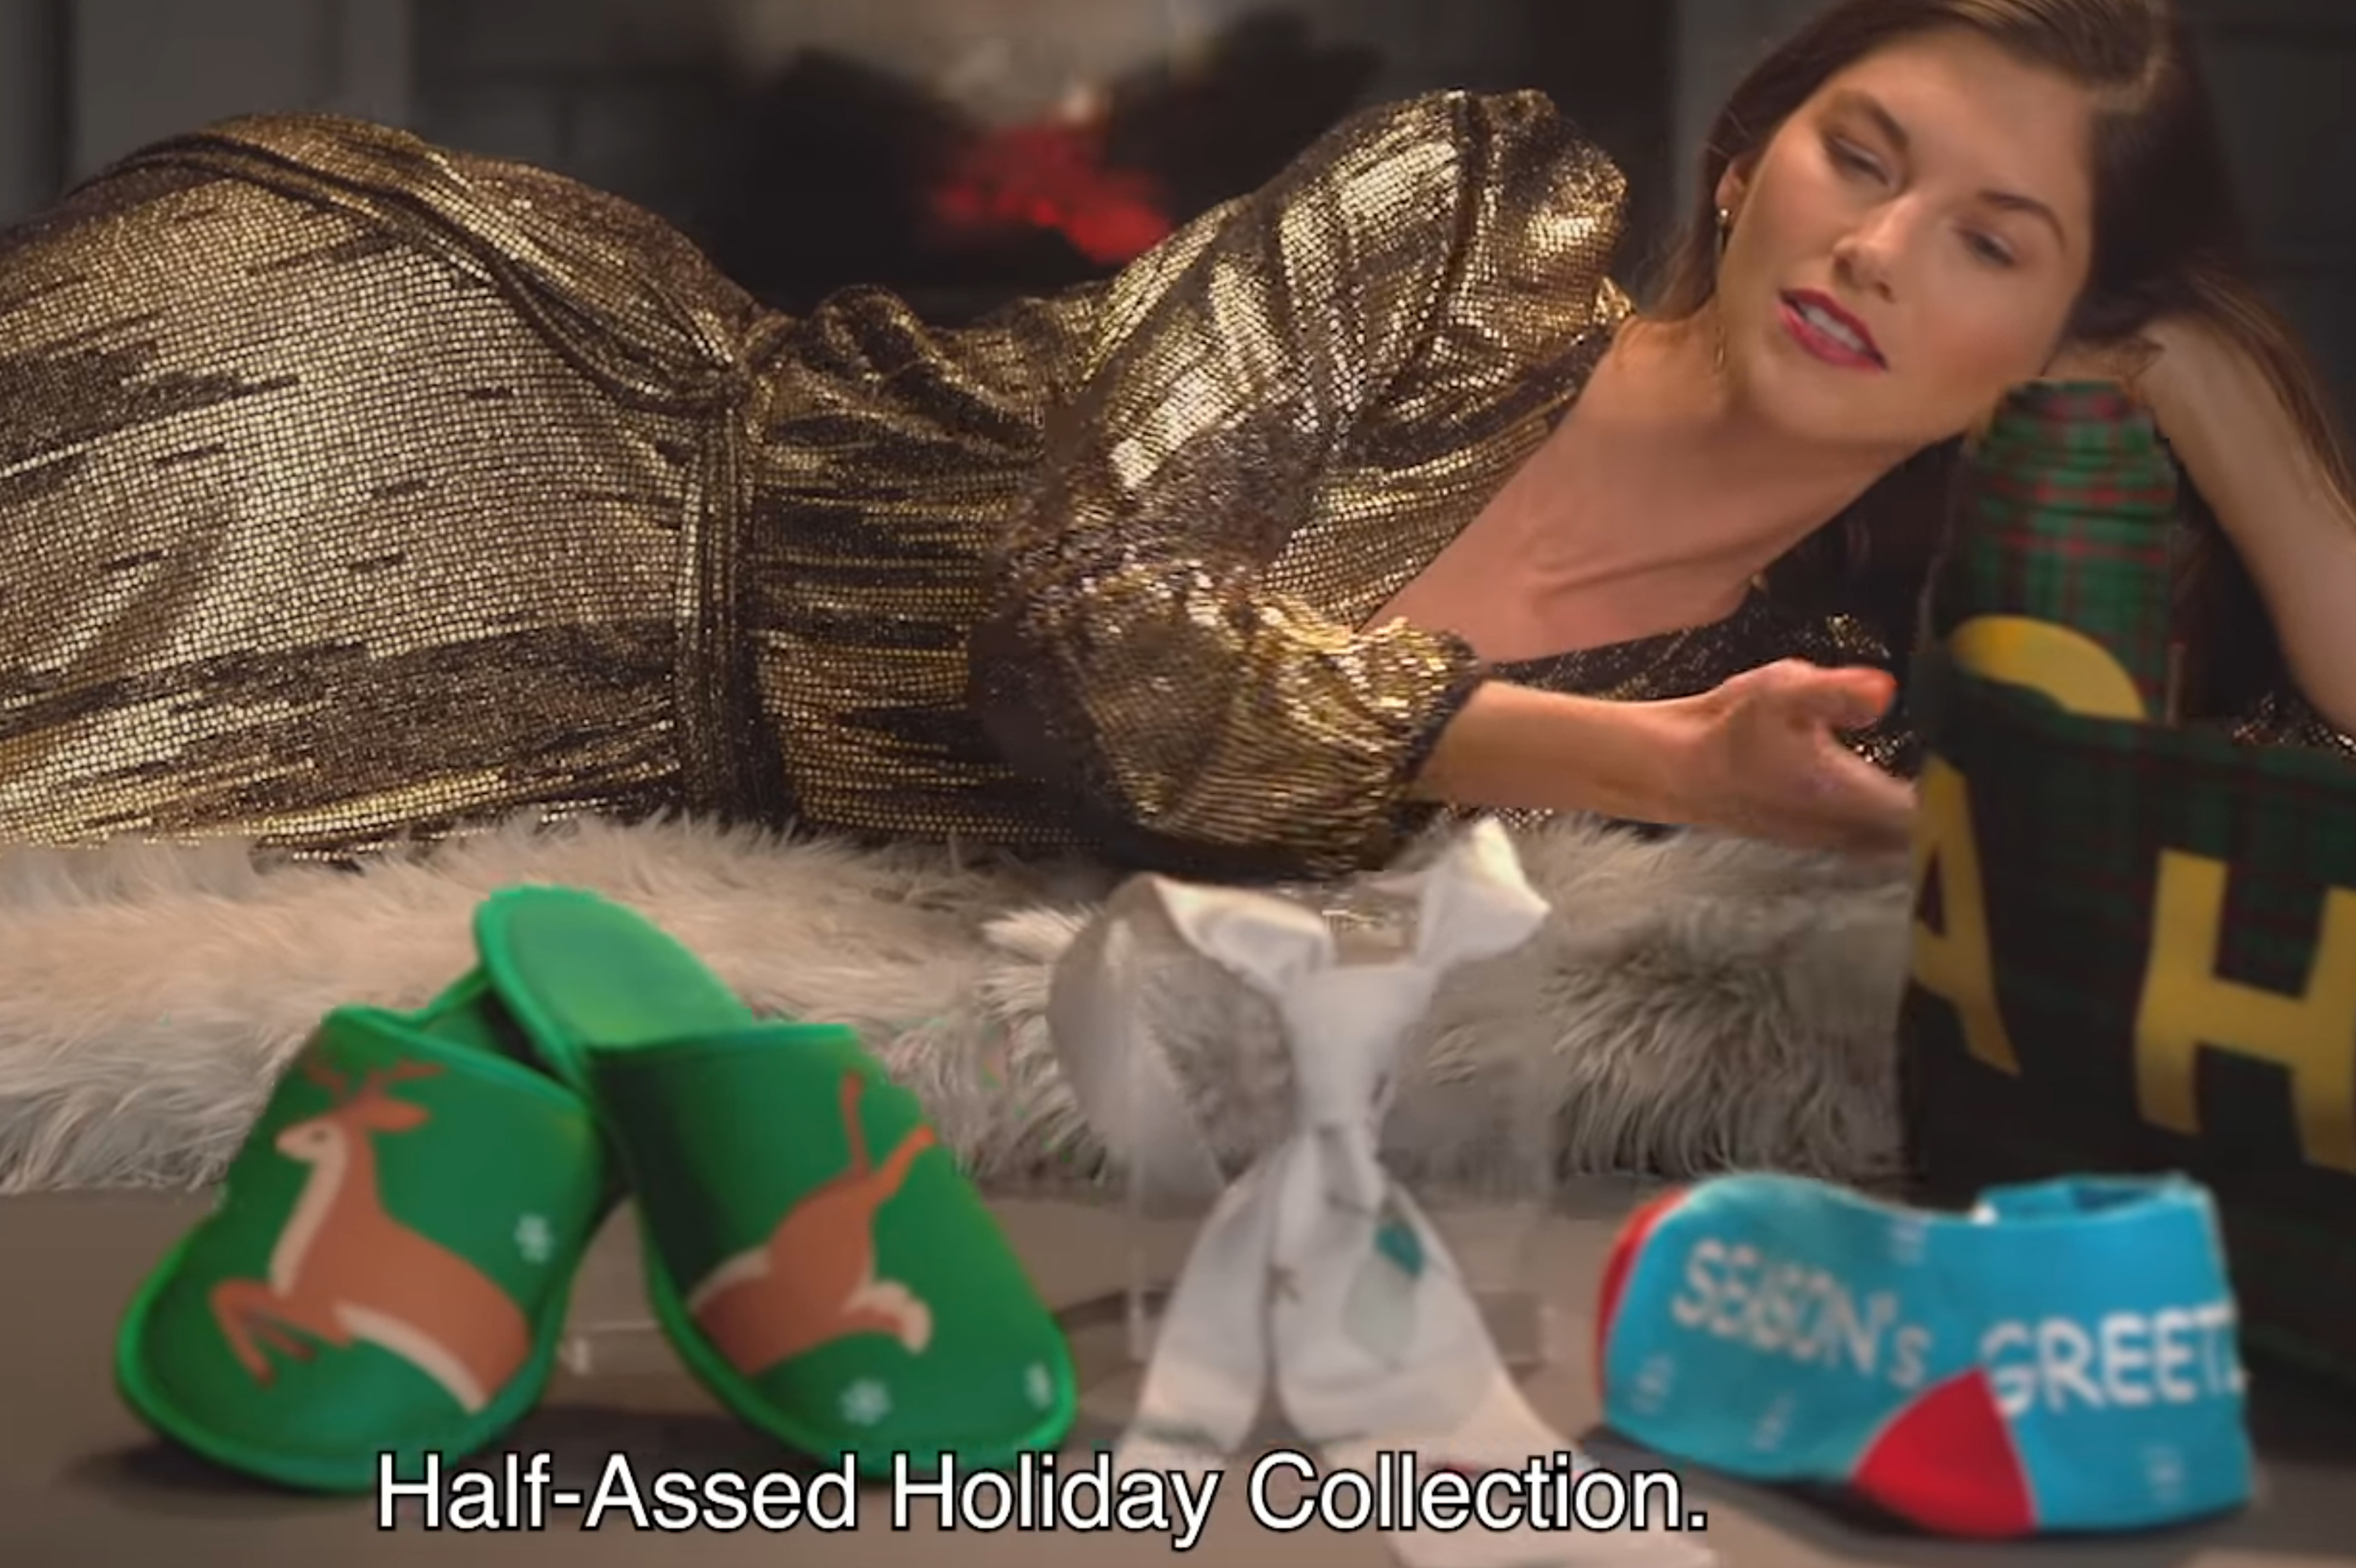 Flaviar: Half-Assed Holiday Gifts